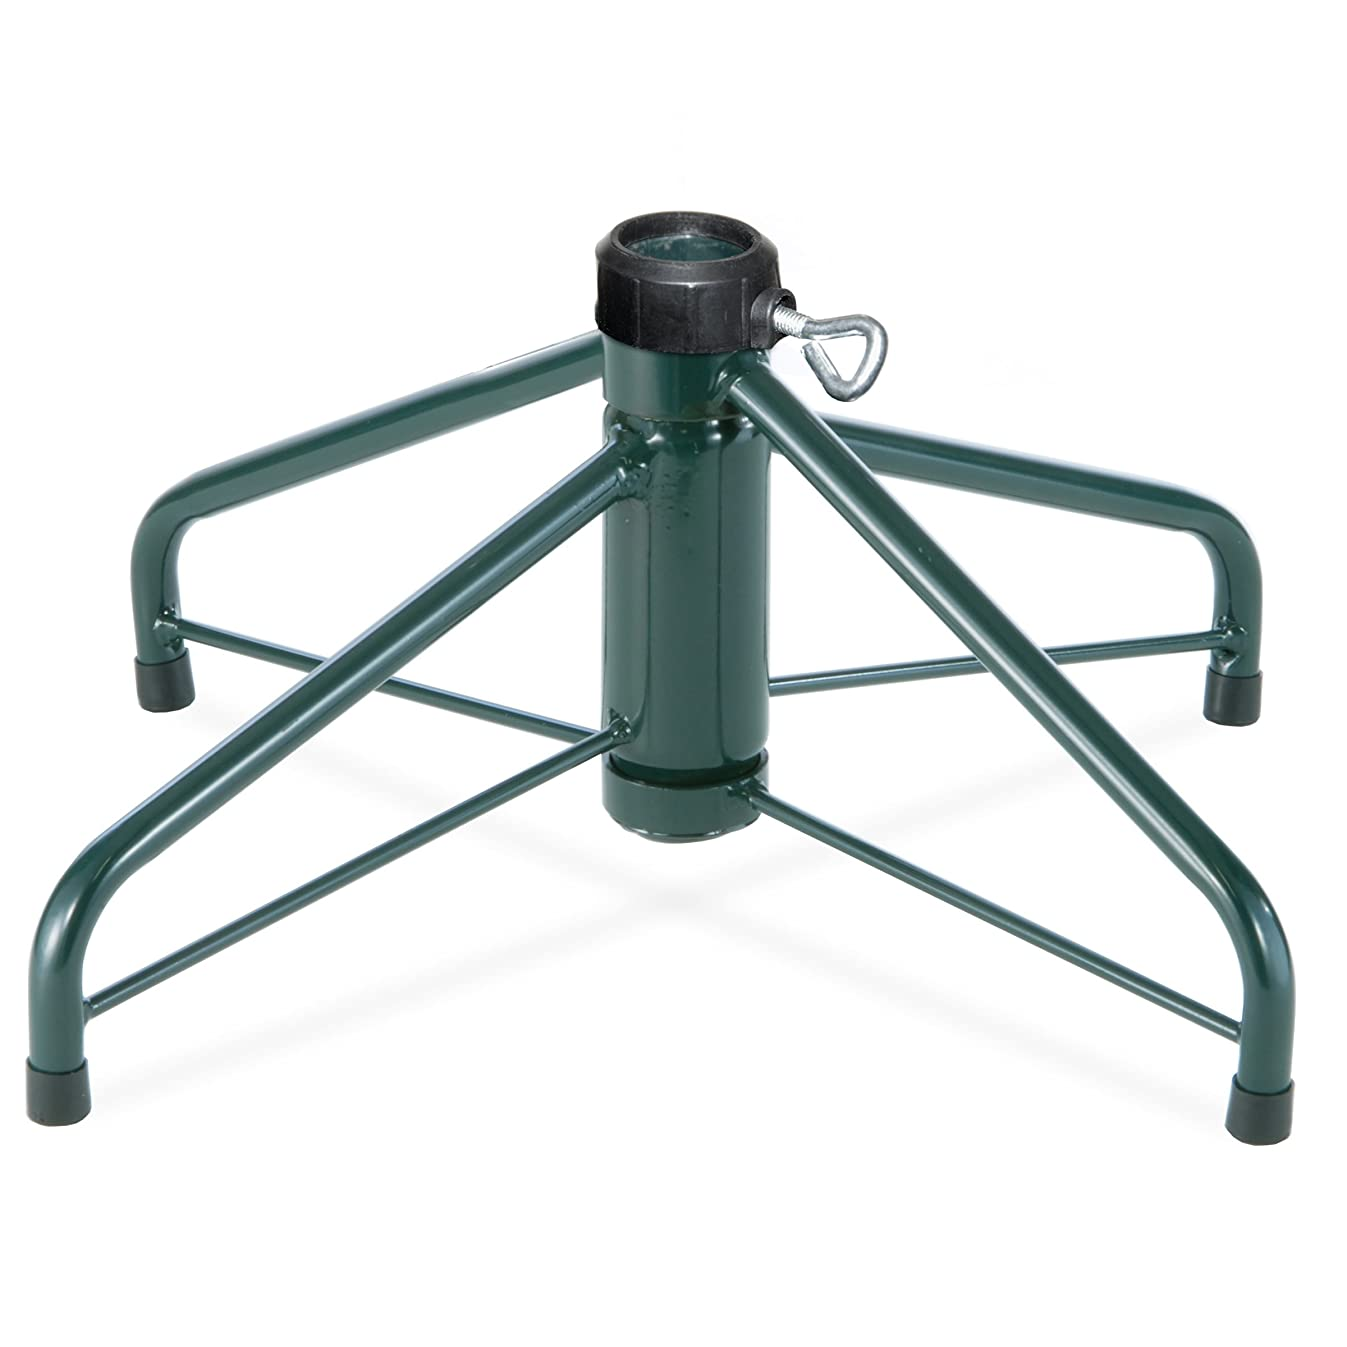 National Tree 24-Inch Folding Tree Stand for 6.5-Feet to 8-Feet Trees, Fits 1.25-Inch Pole (FTS-24-1)